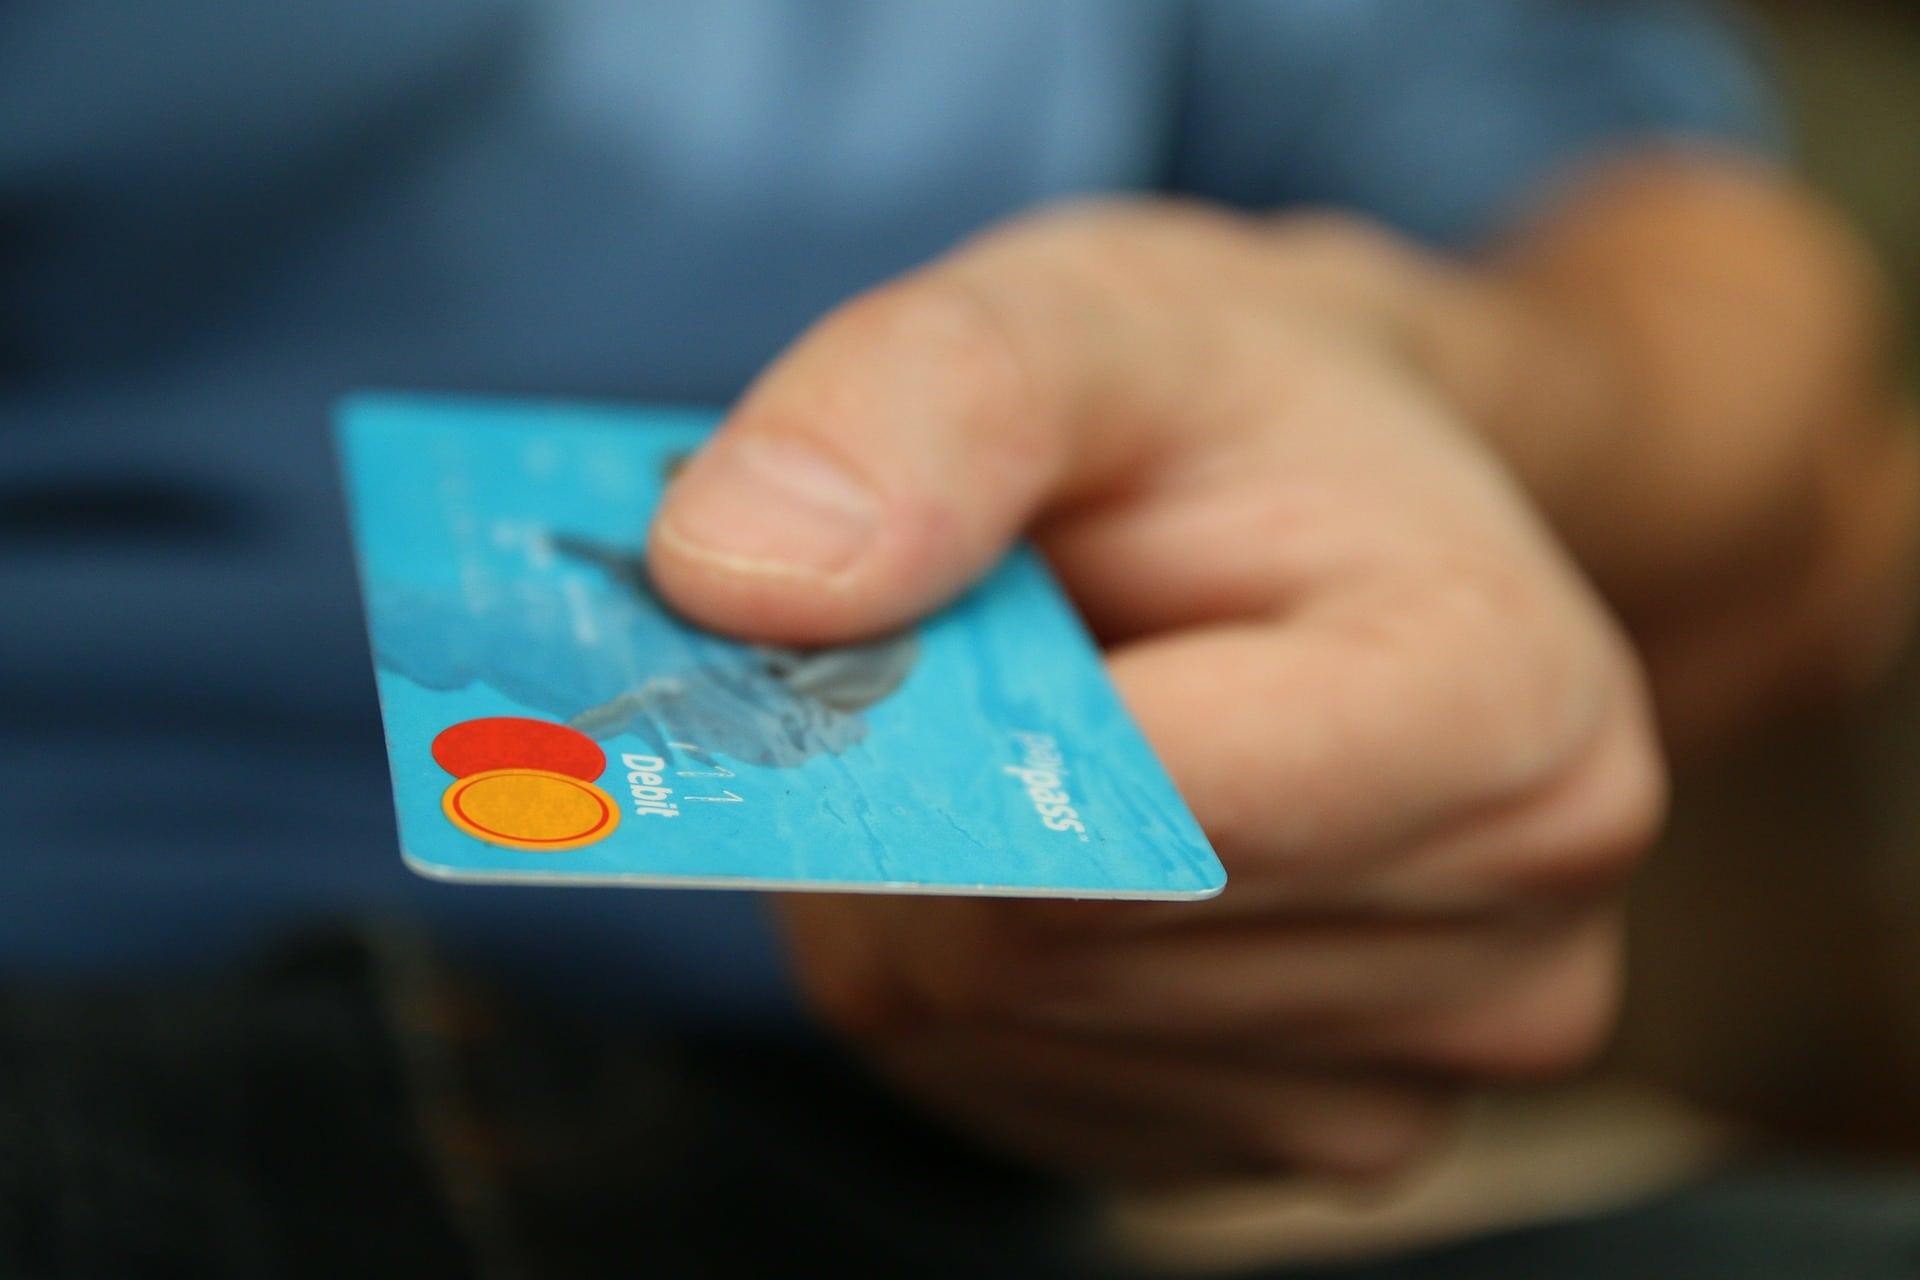 credit card fraud in arizona - man paying with a credit card